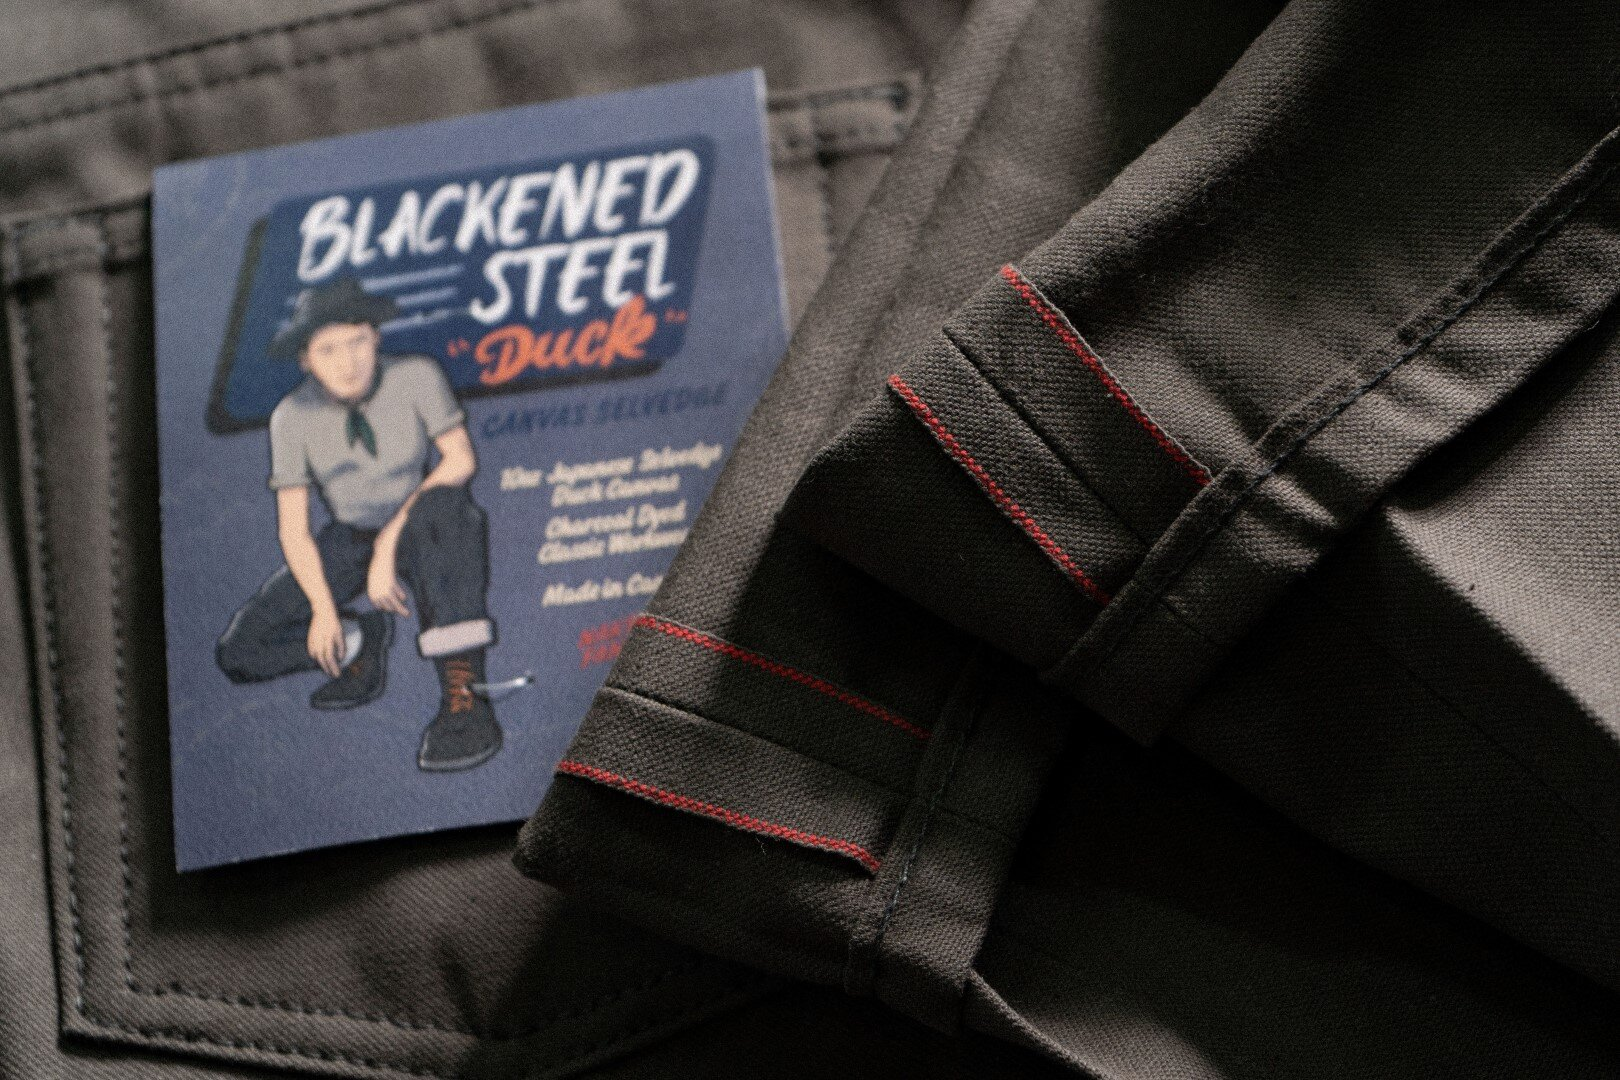 Blackened Steel Duck Selvedge - Selvedge ID